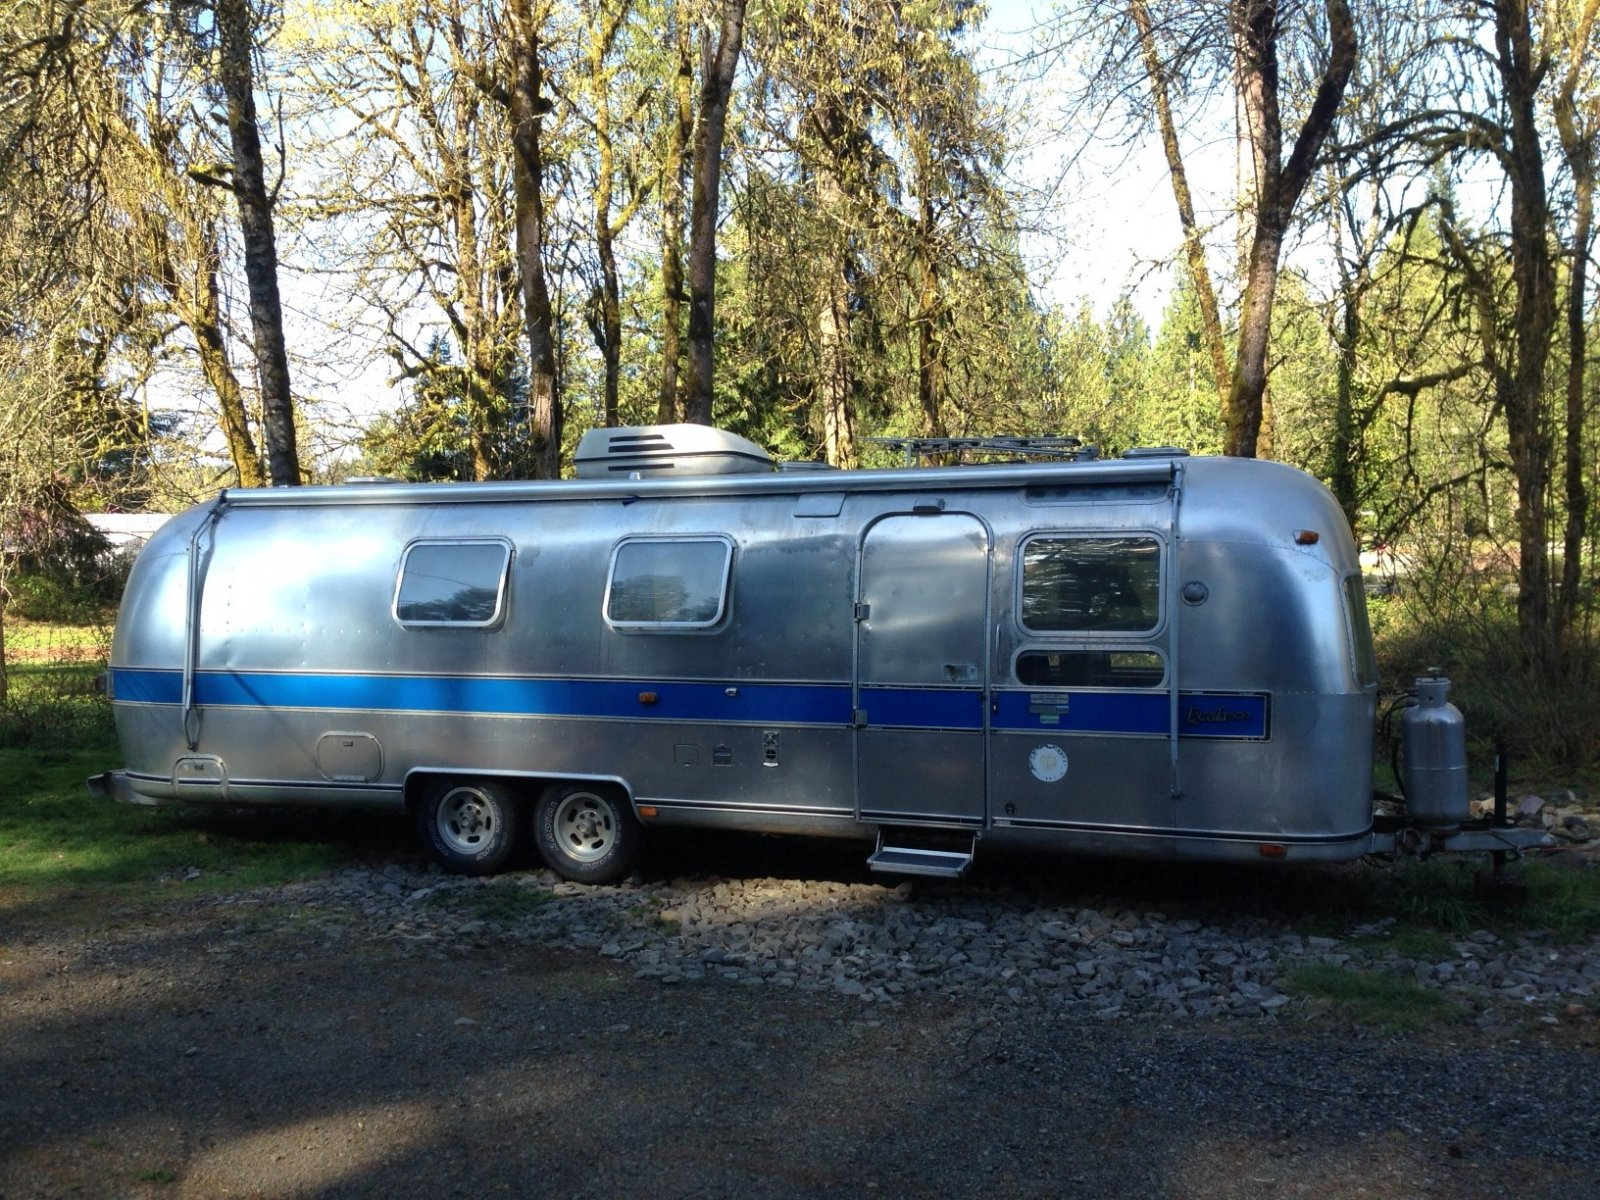 Click image for larger version  Name:Airstream side view.jpg Views:84 Size:526.8 KB ID:210397